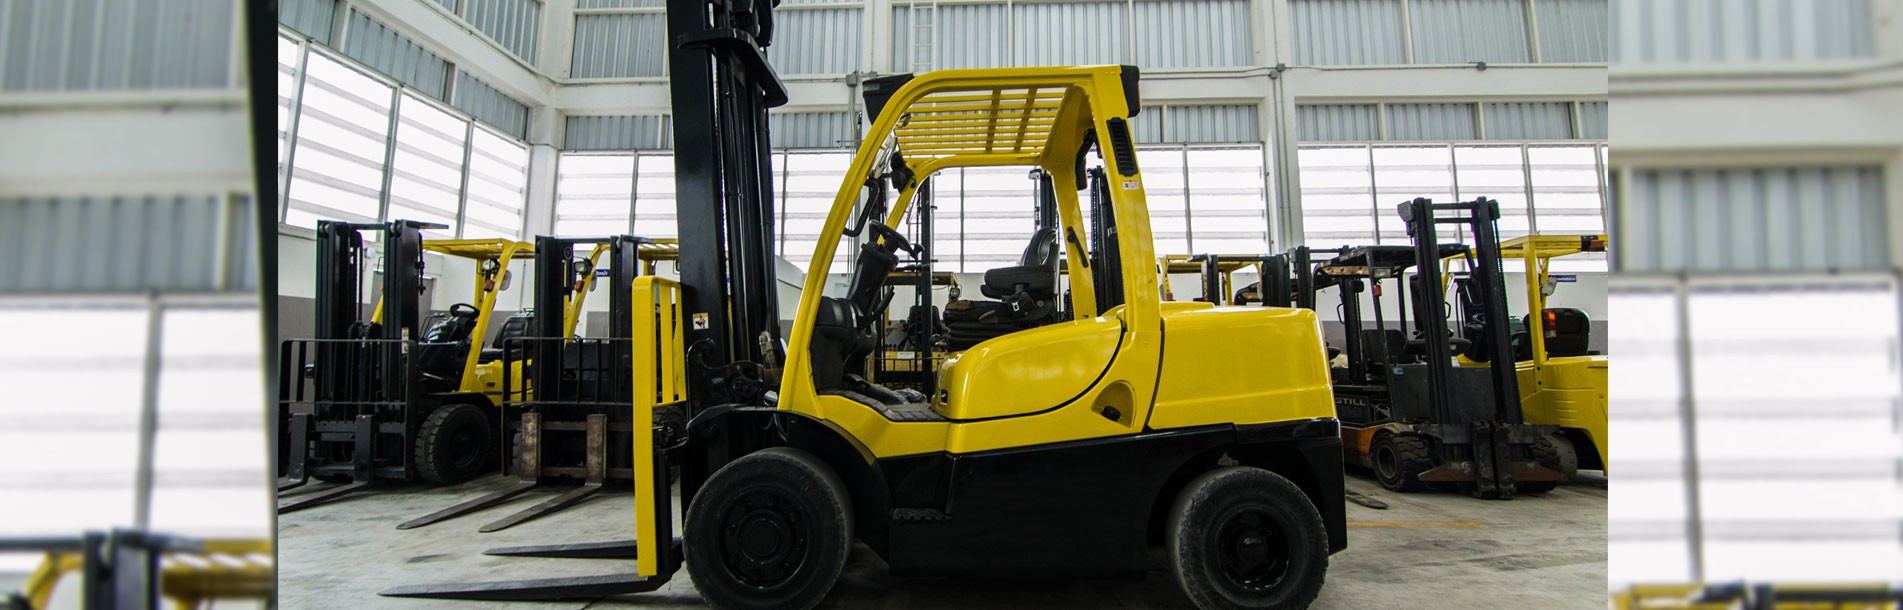 Apex Fork Lift